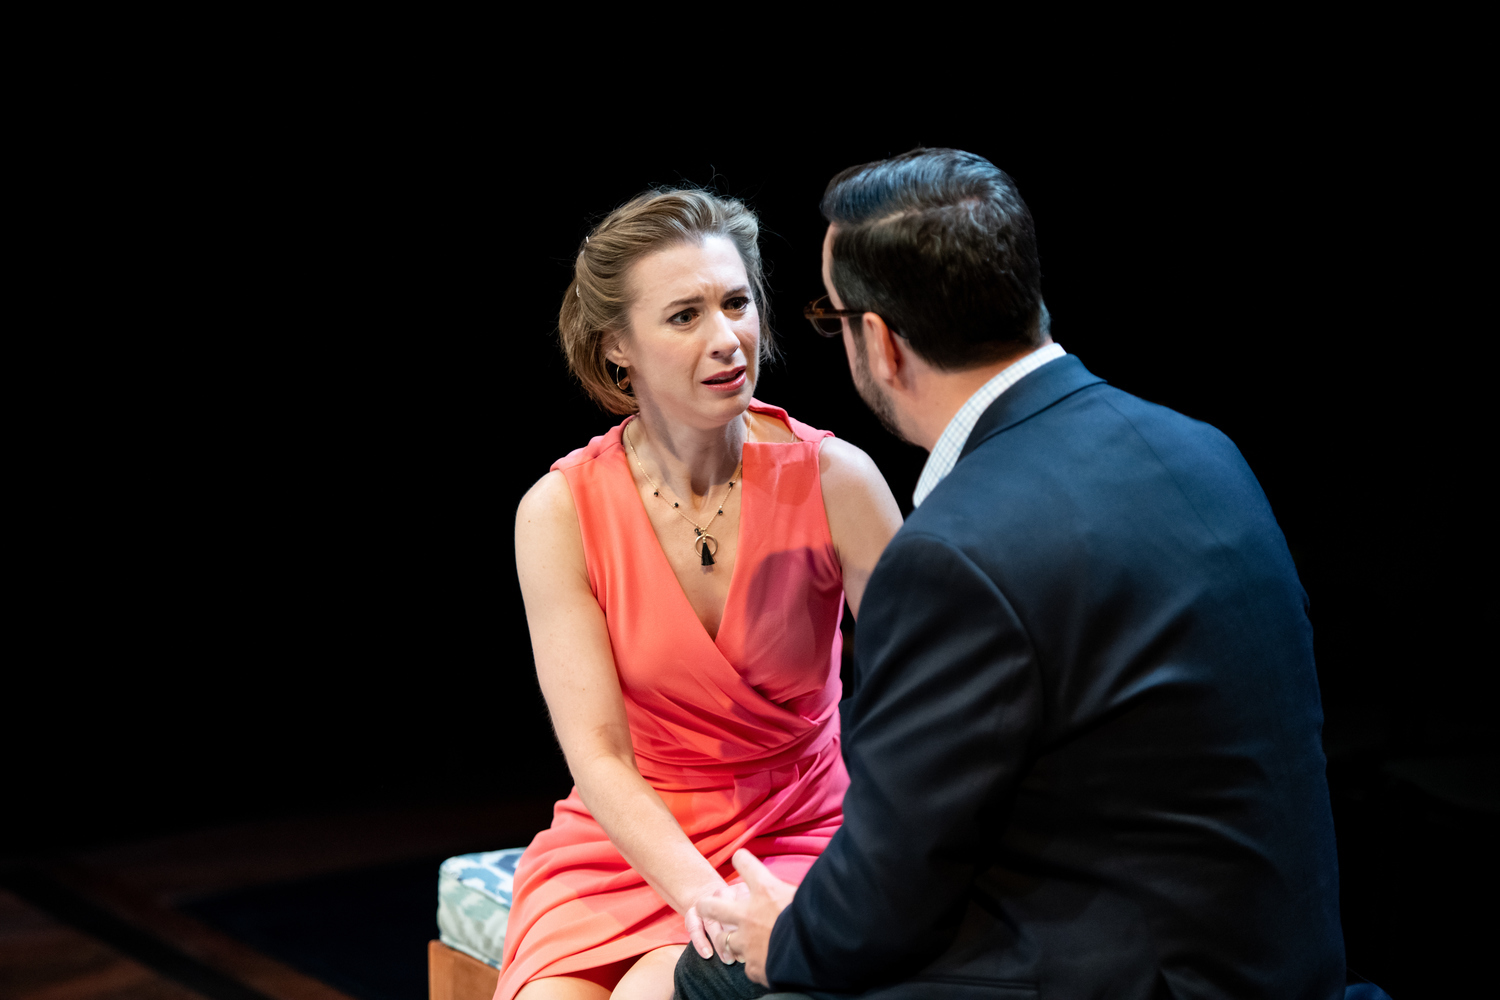 BWW Review: You'll Laugh, You'll Shiver: WRECKED at Contemporary American Theater Festival